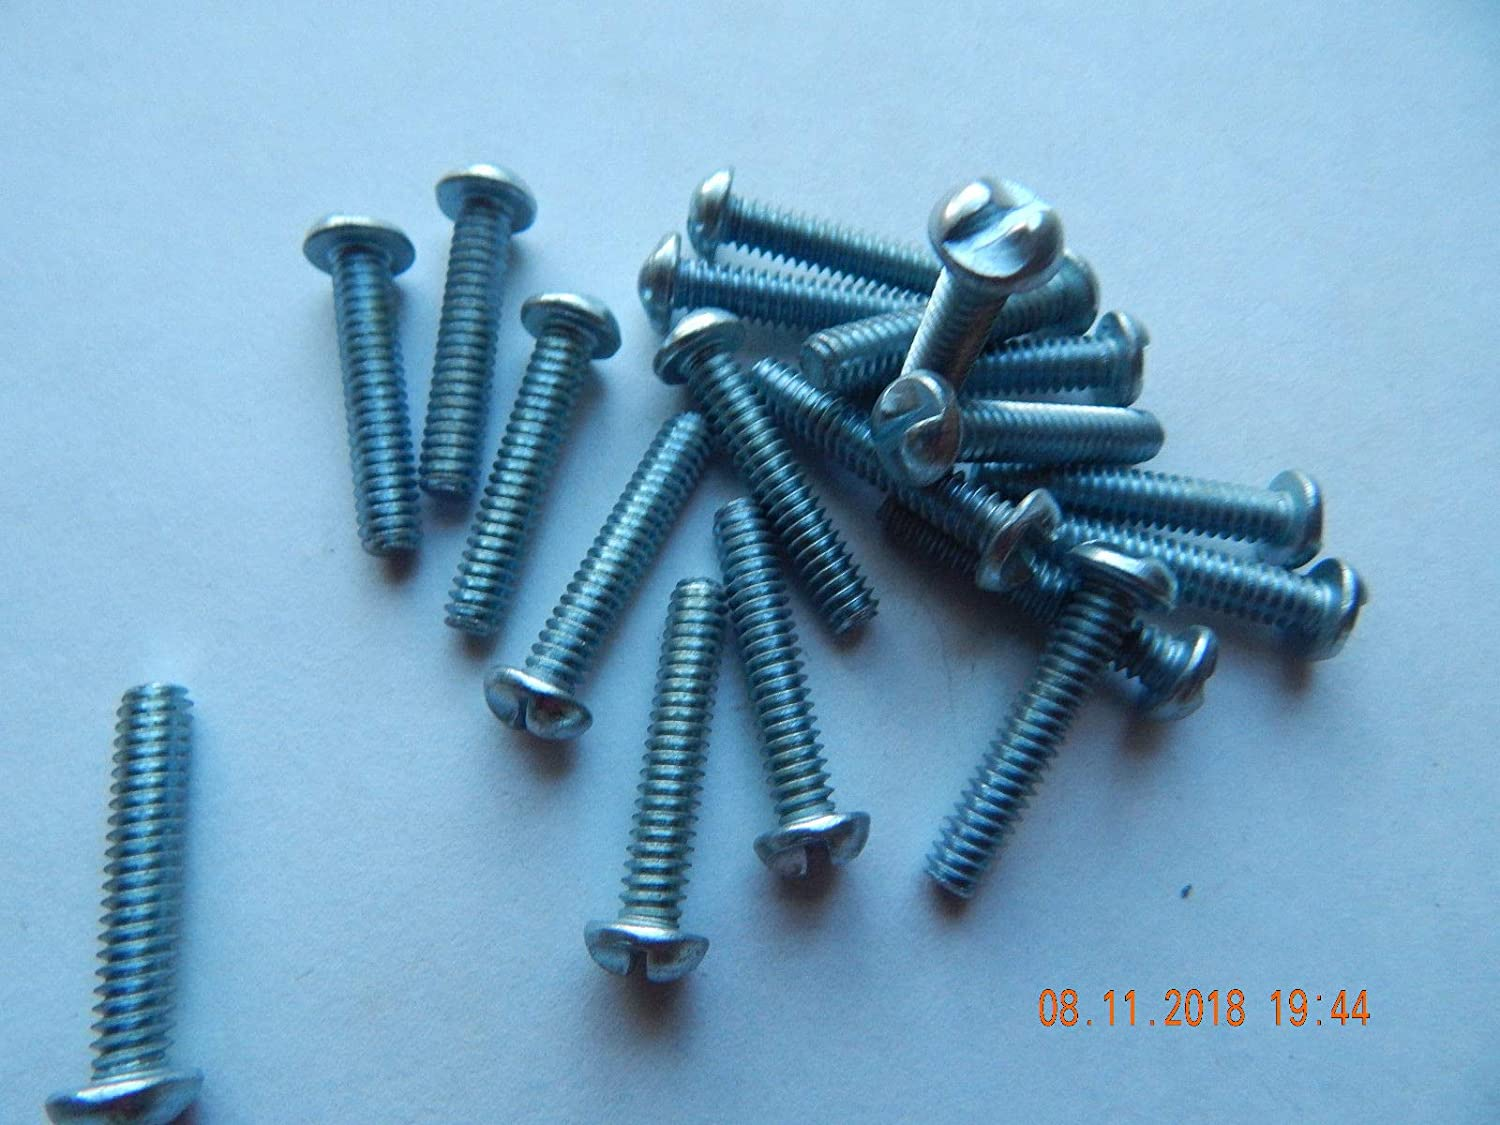 1300-Piece Hard-to-Find Fastener 014973318321 Square Deckselect Silver 7 x 1-Inch